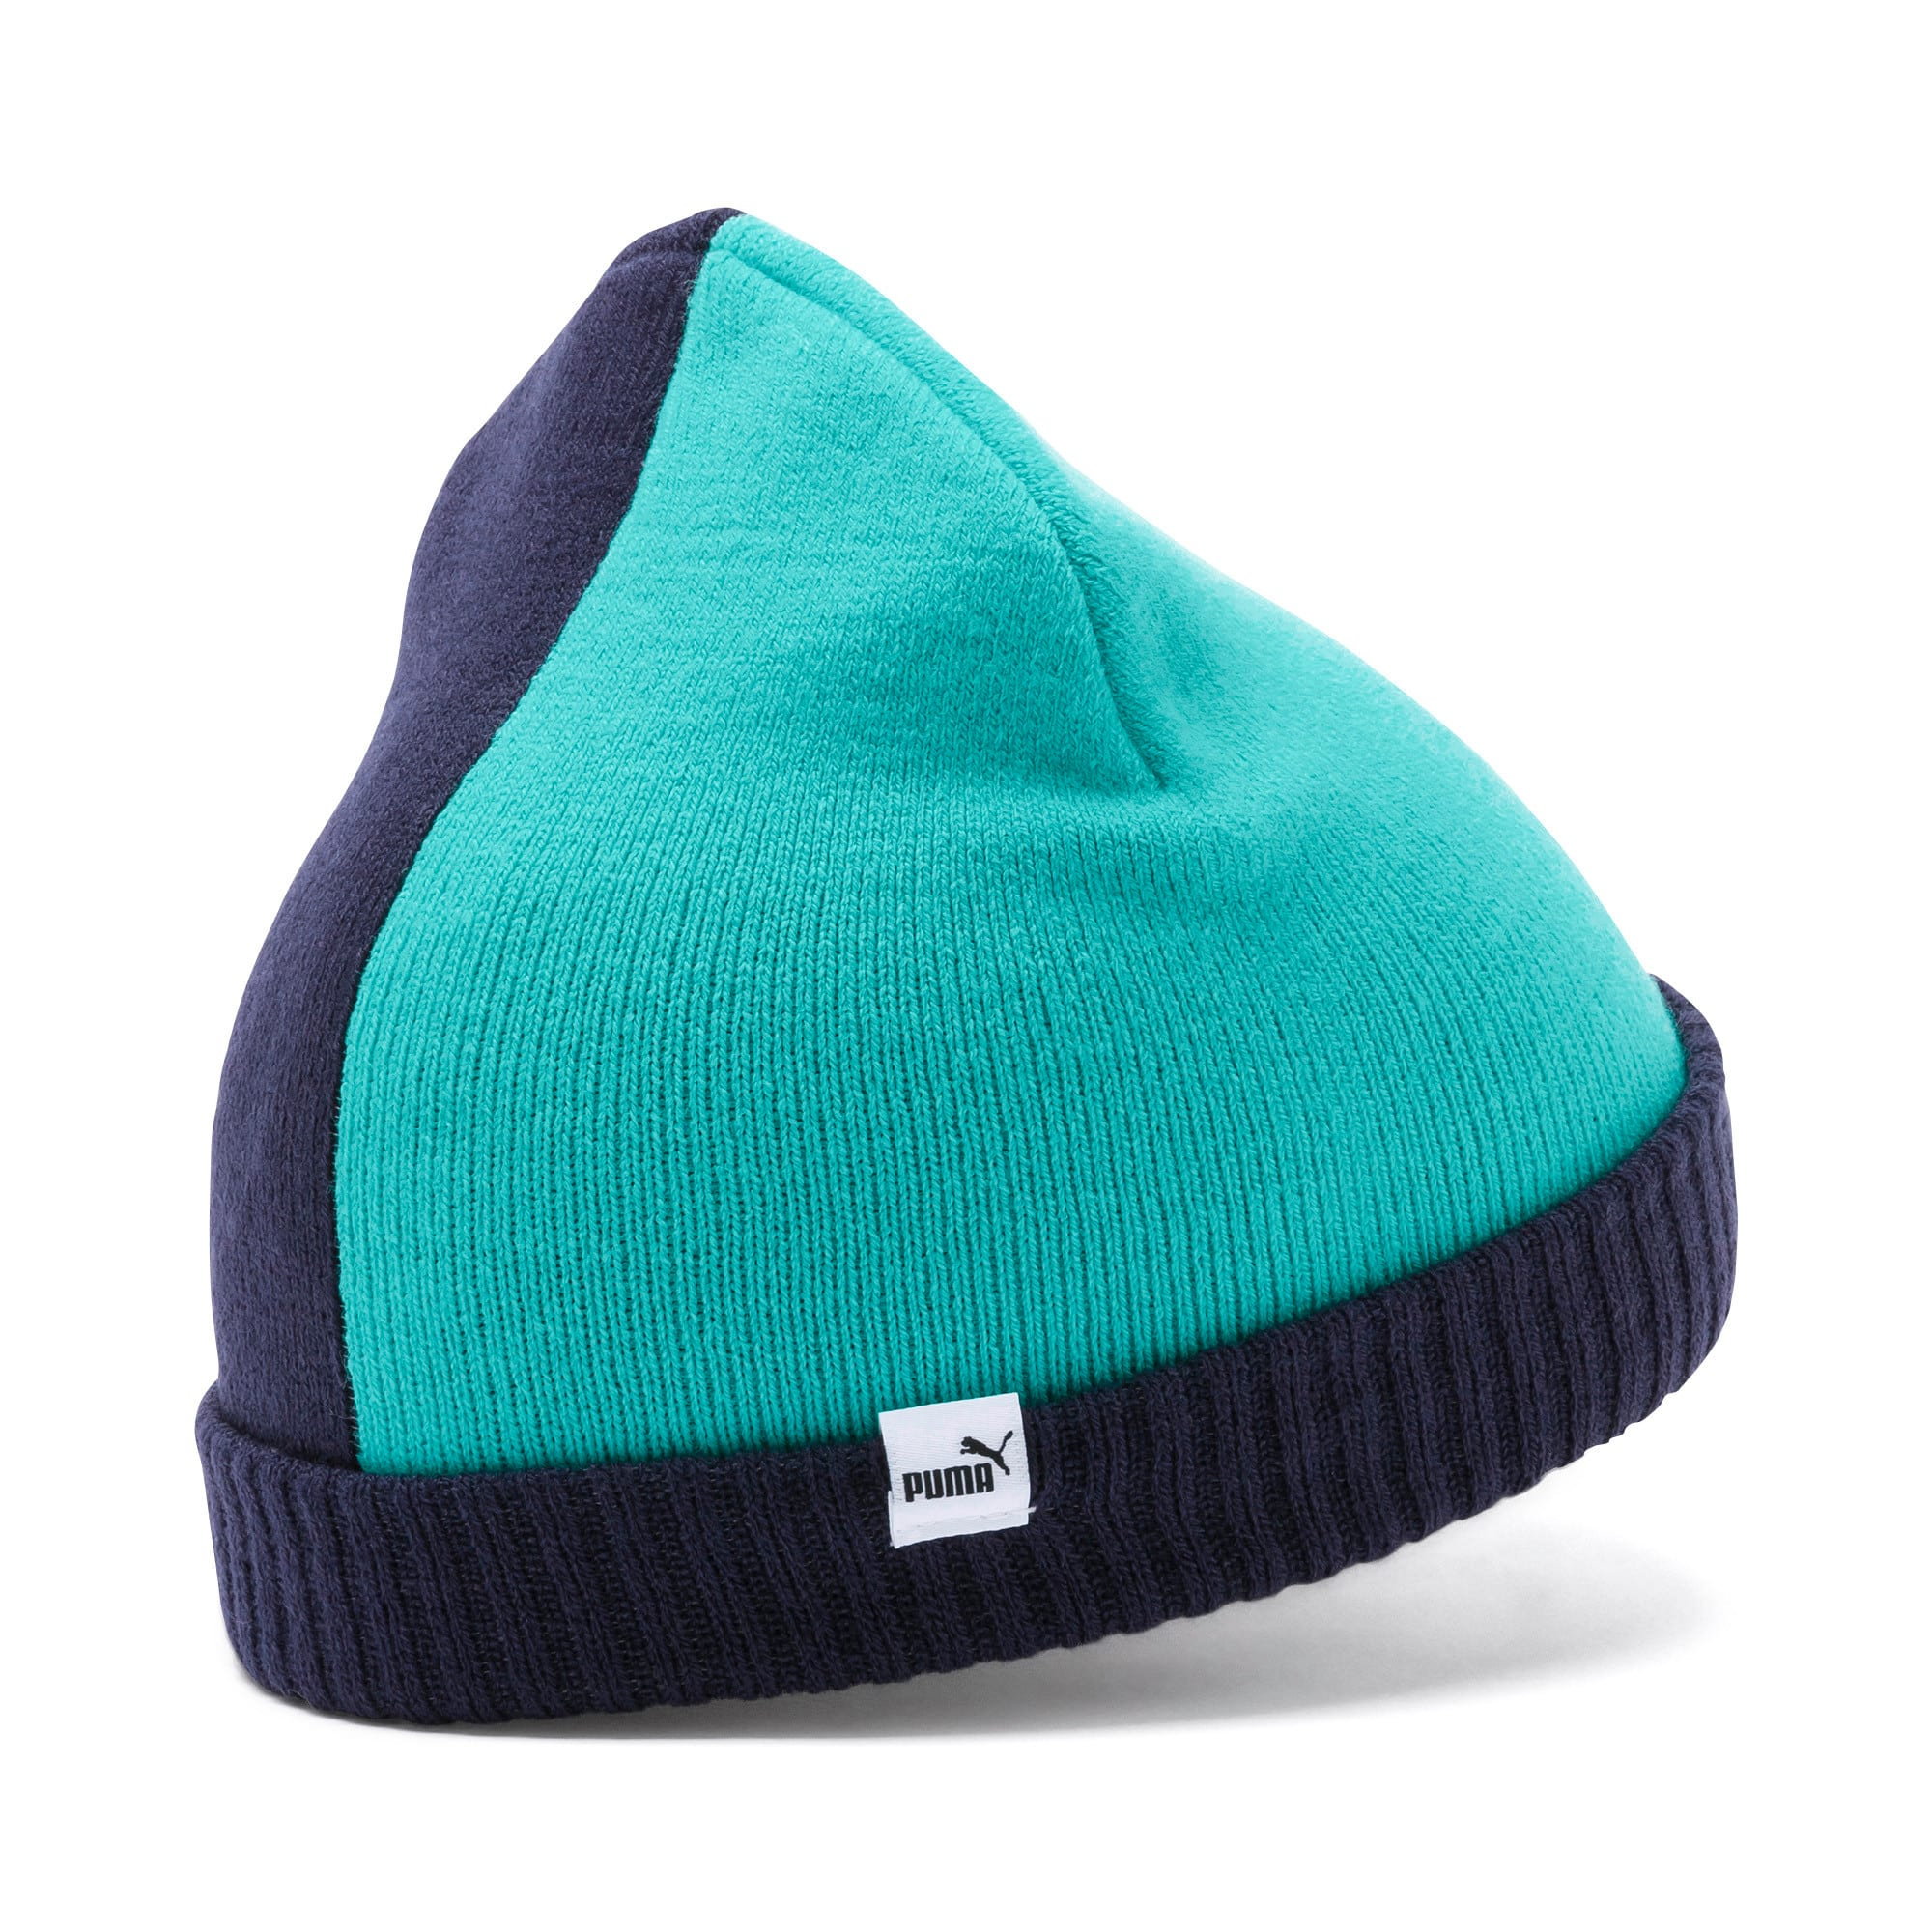 Minicats Kids' Beanie, Peacoat-Blue Turquoise, large